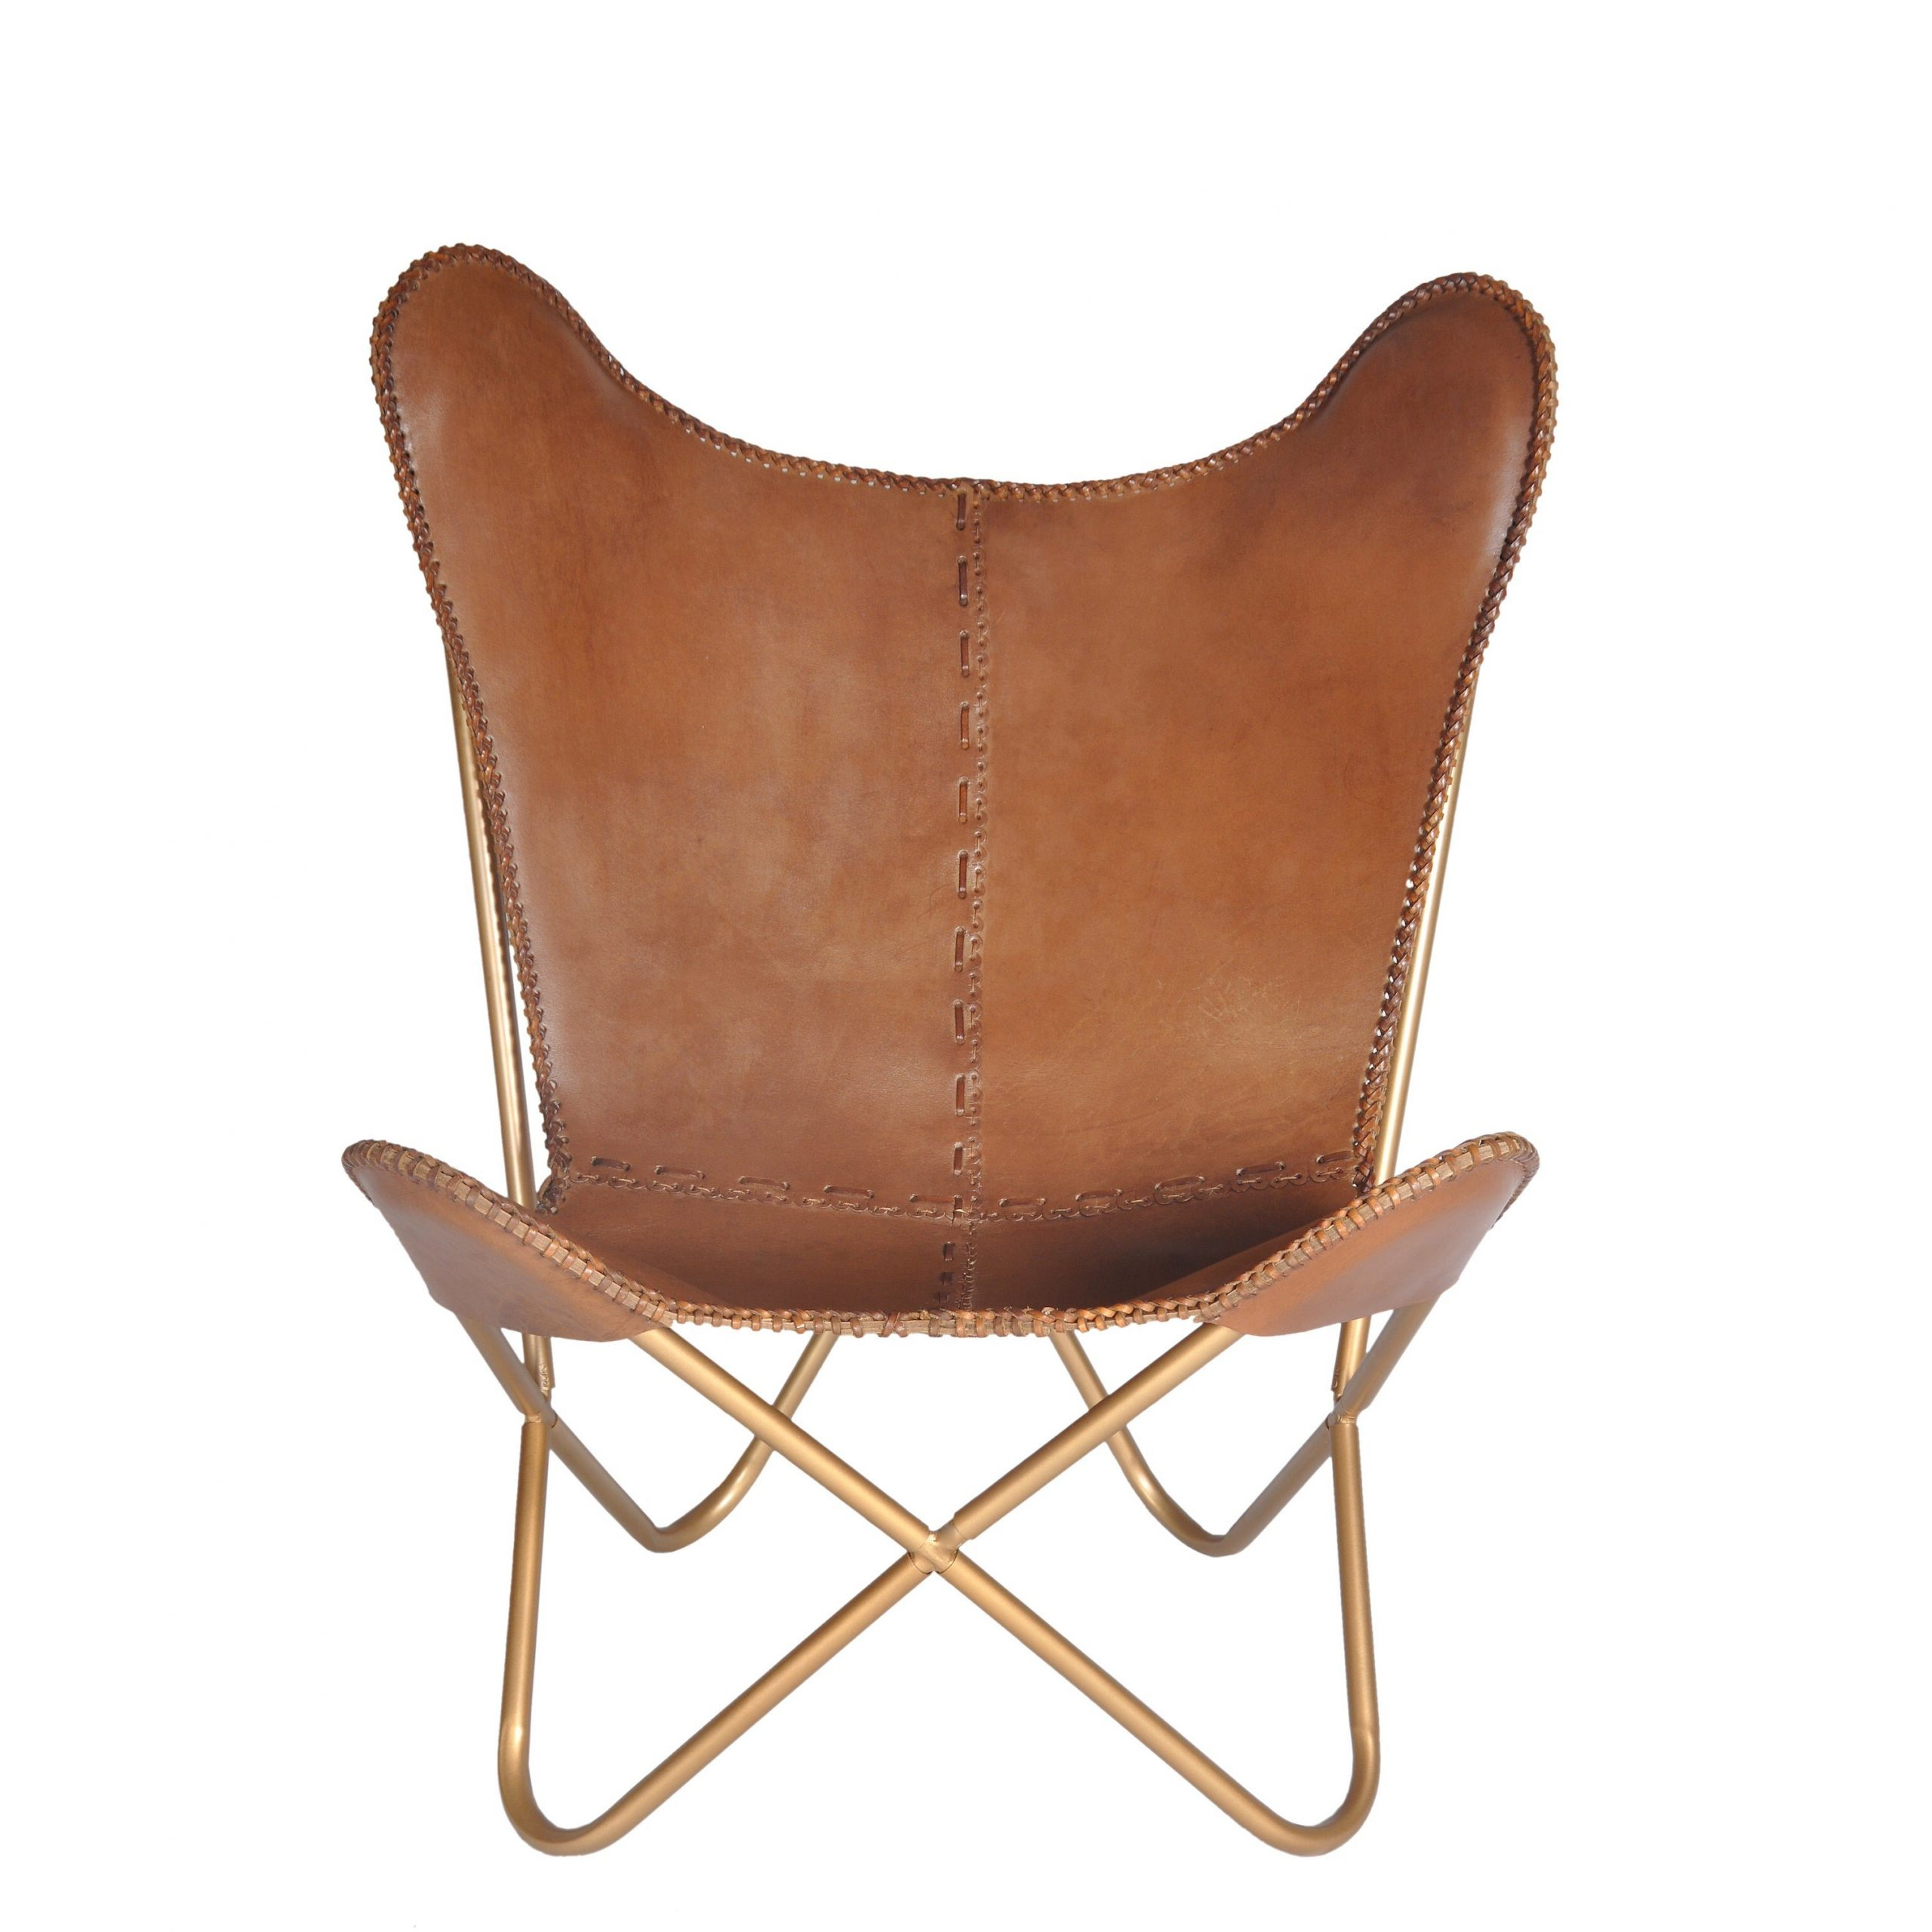 Broadus Genuine Leather Suede Side Chairs Intended For Well Known Brown Leather Accent Chairs You'll Love In (View 4 of 20)